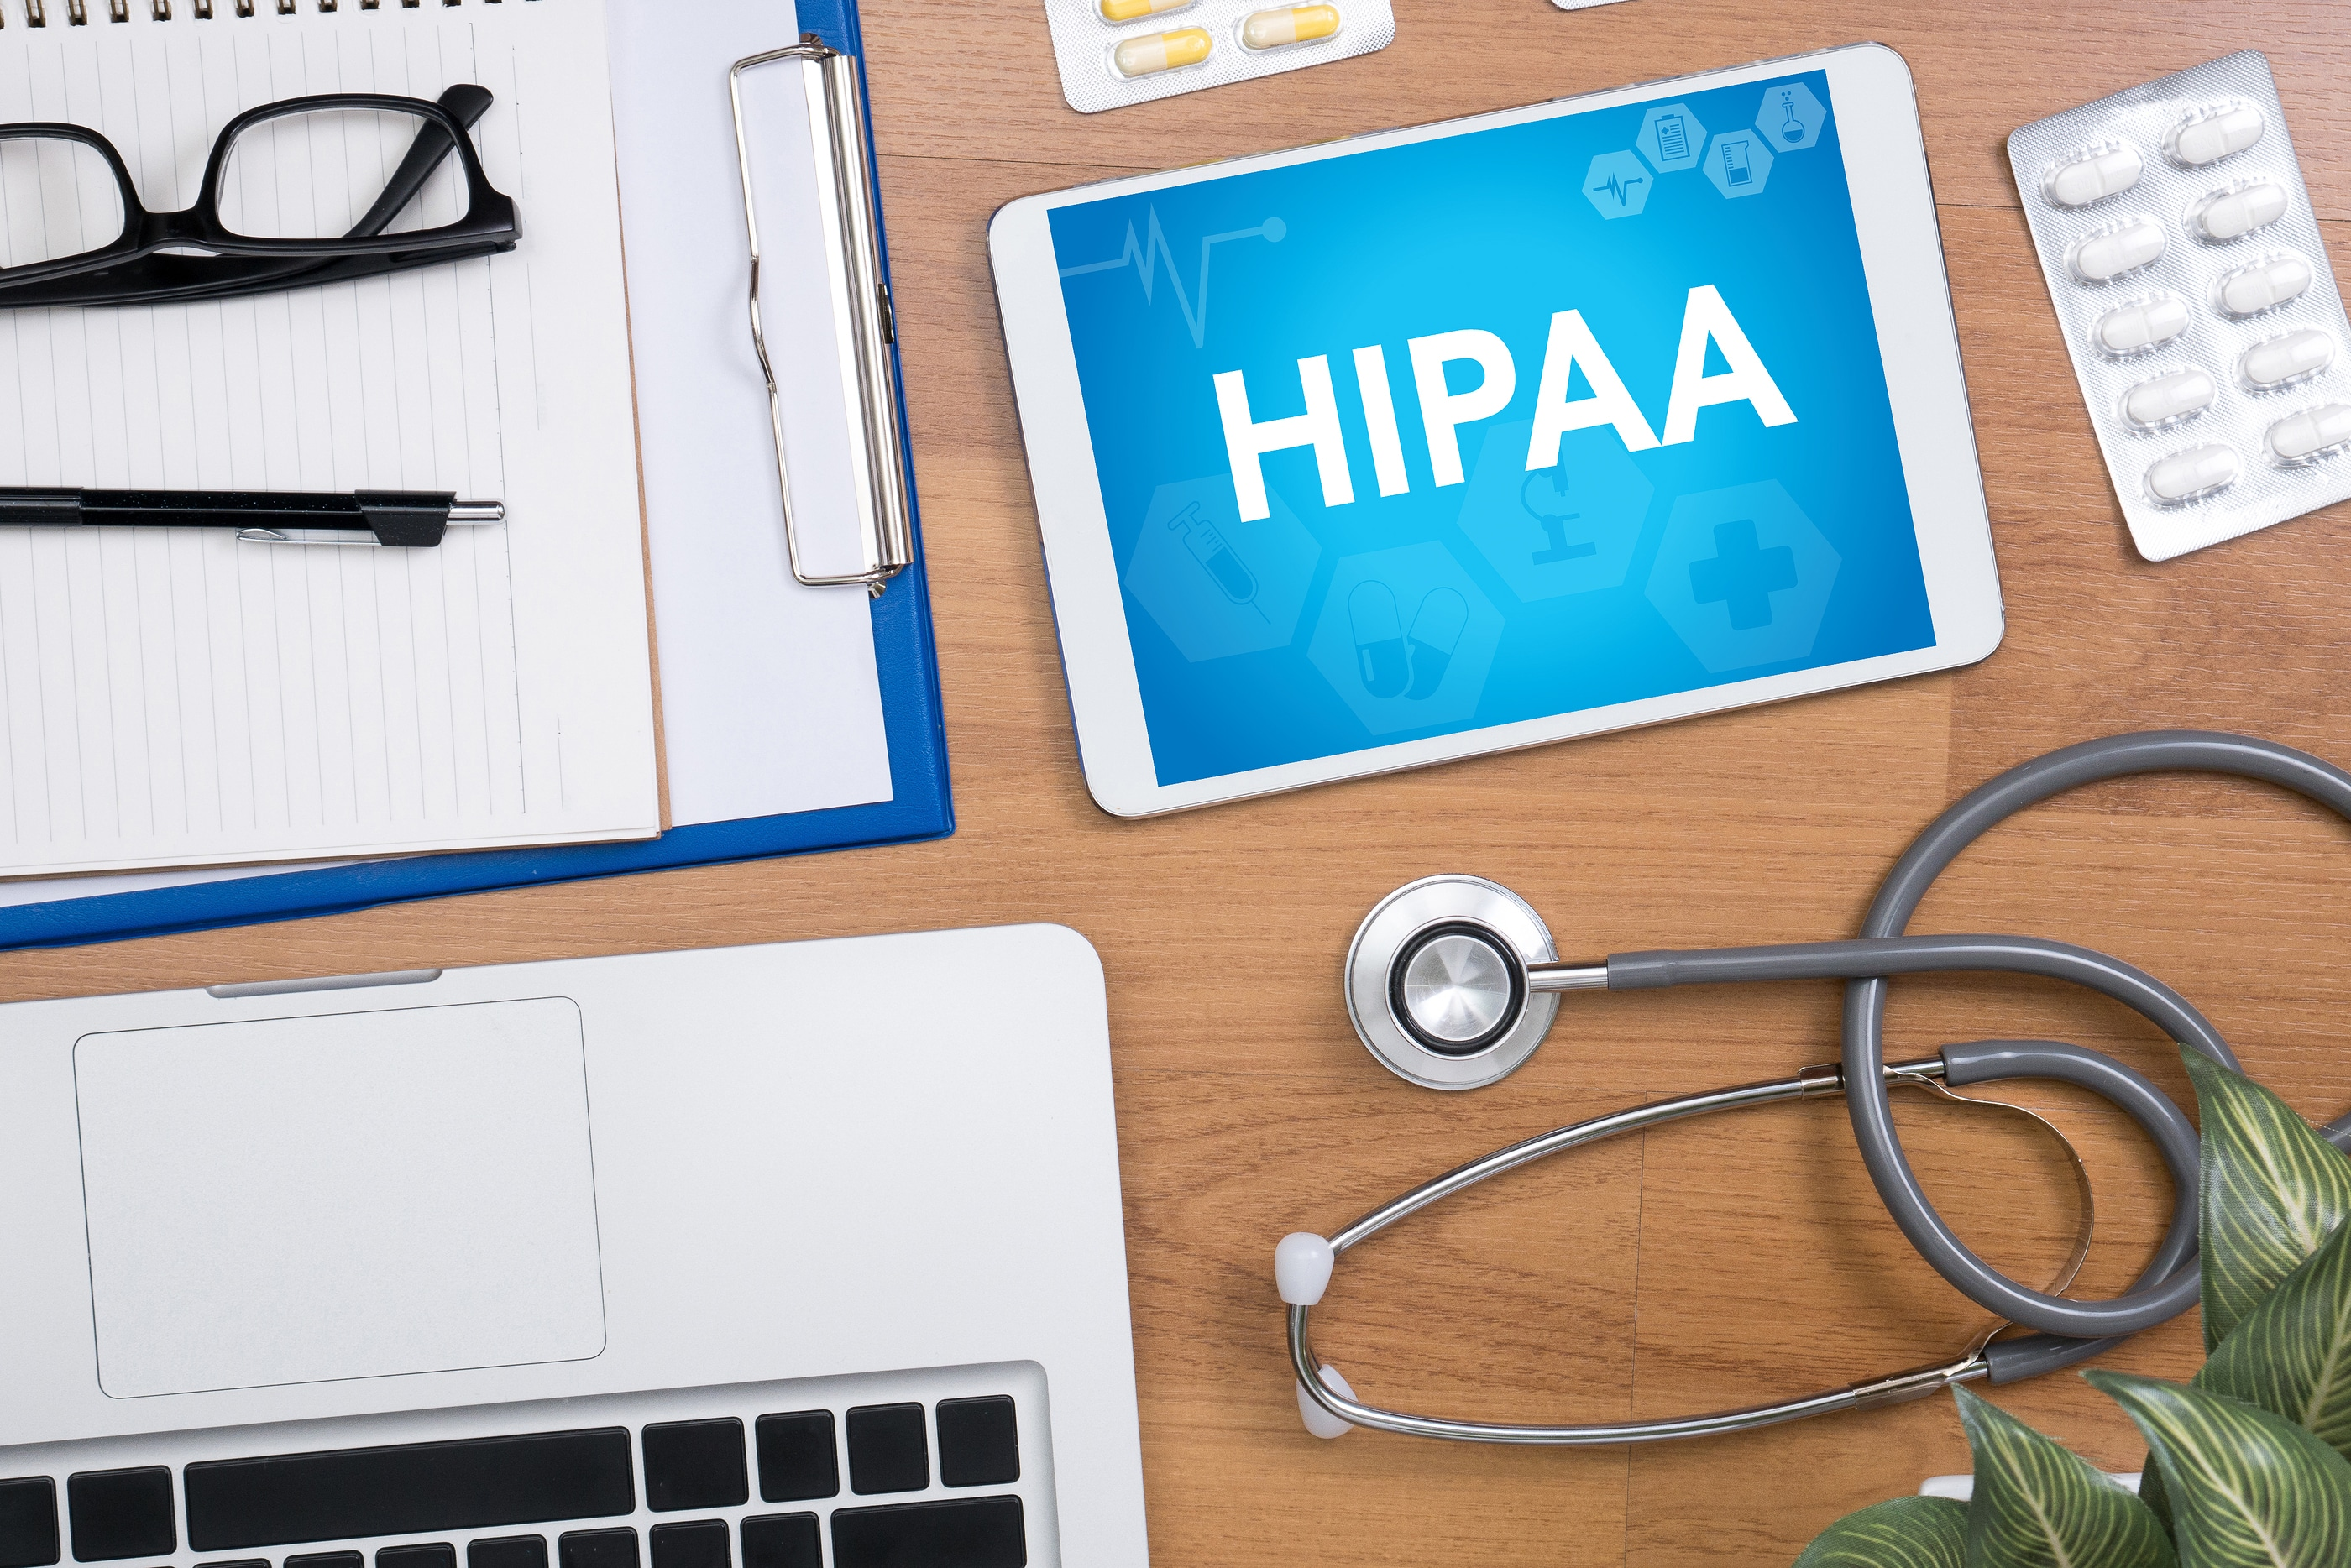 HIPAA Professional doctor use computer and medical equipment all around desktop top view